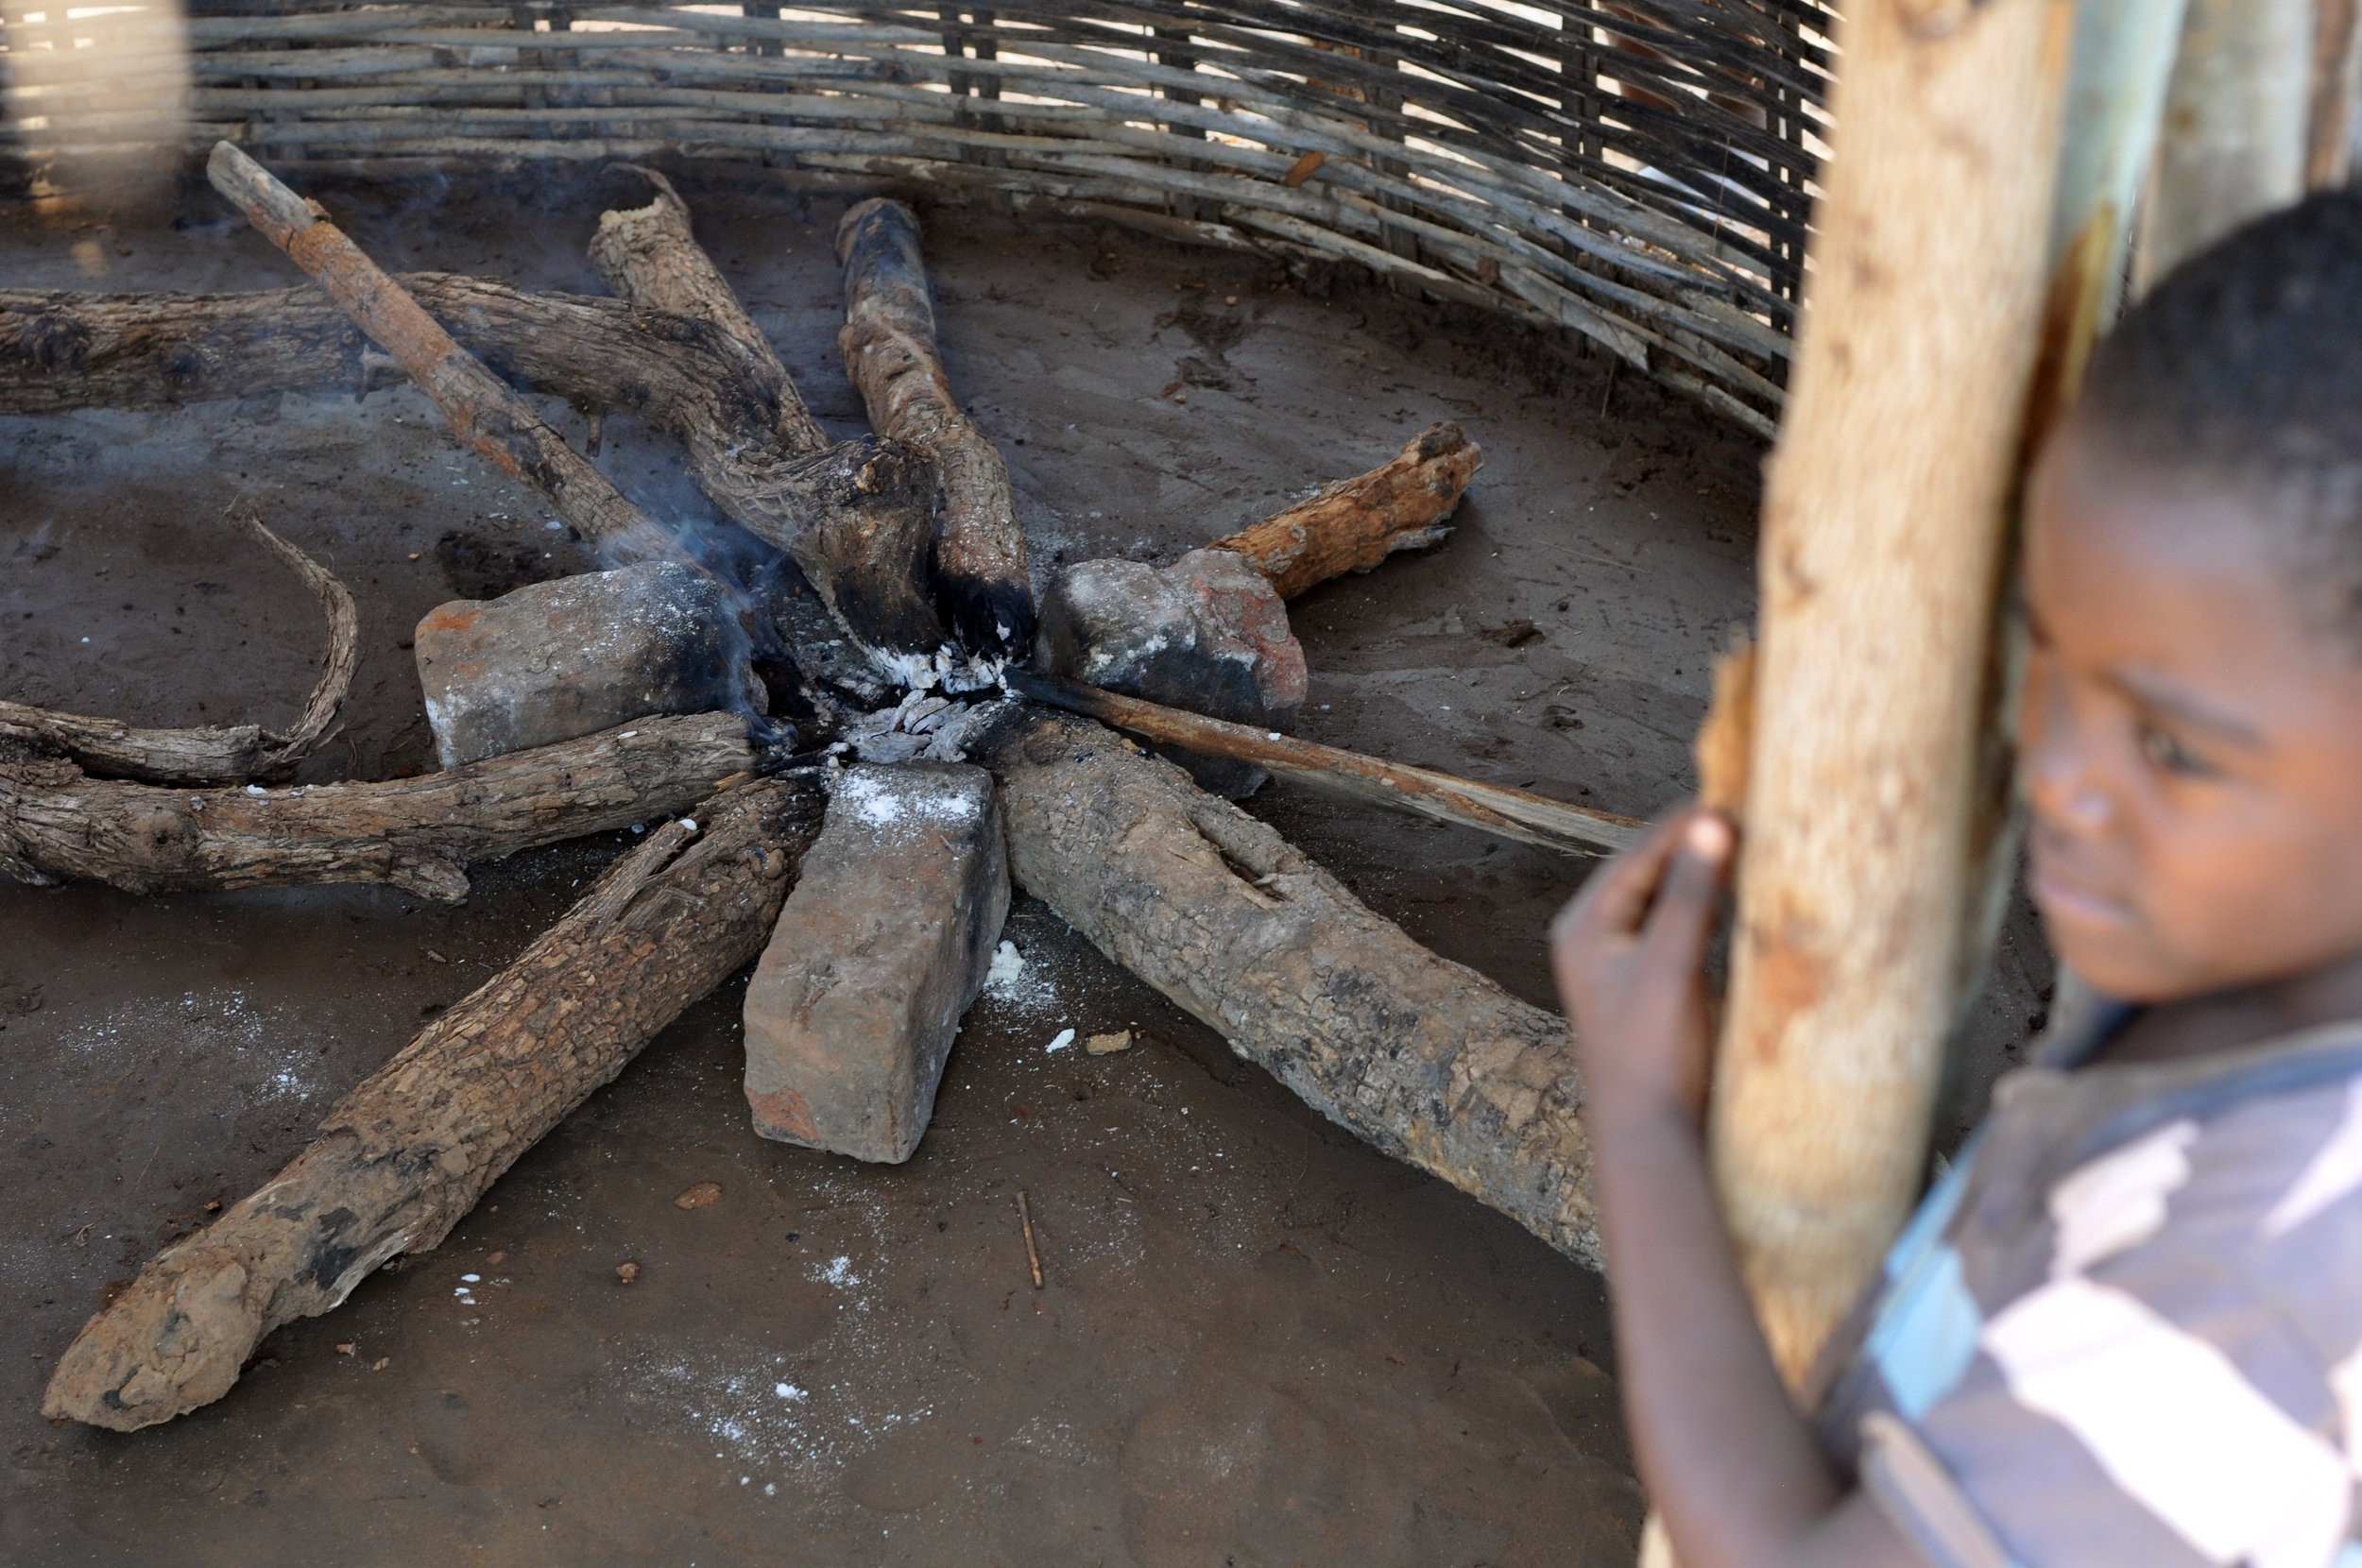 Open fires utilize large logs, which are unsustainably harvested from surrounding forests and wooded areas of agricultural lands, the major driver of deforestation in the Luangwa valley region of Zambia. Three-stone fires like this one are less than 10% efficient in transferring the energy in the wood into the pot to cook food in addition to being very smoky.